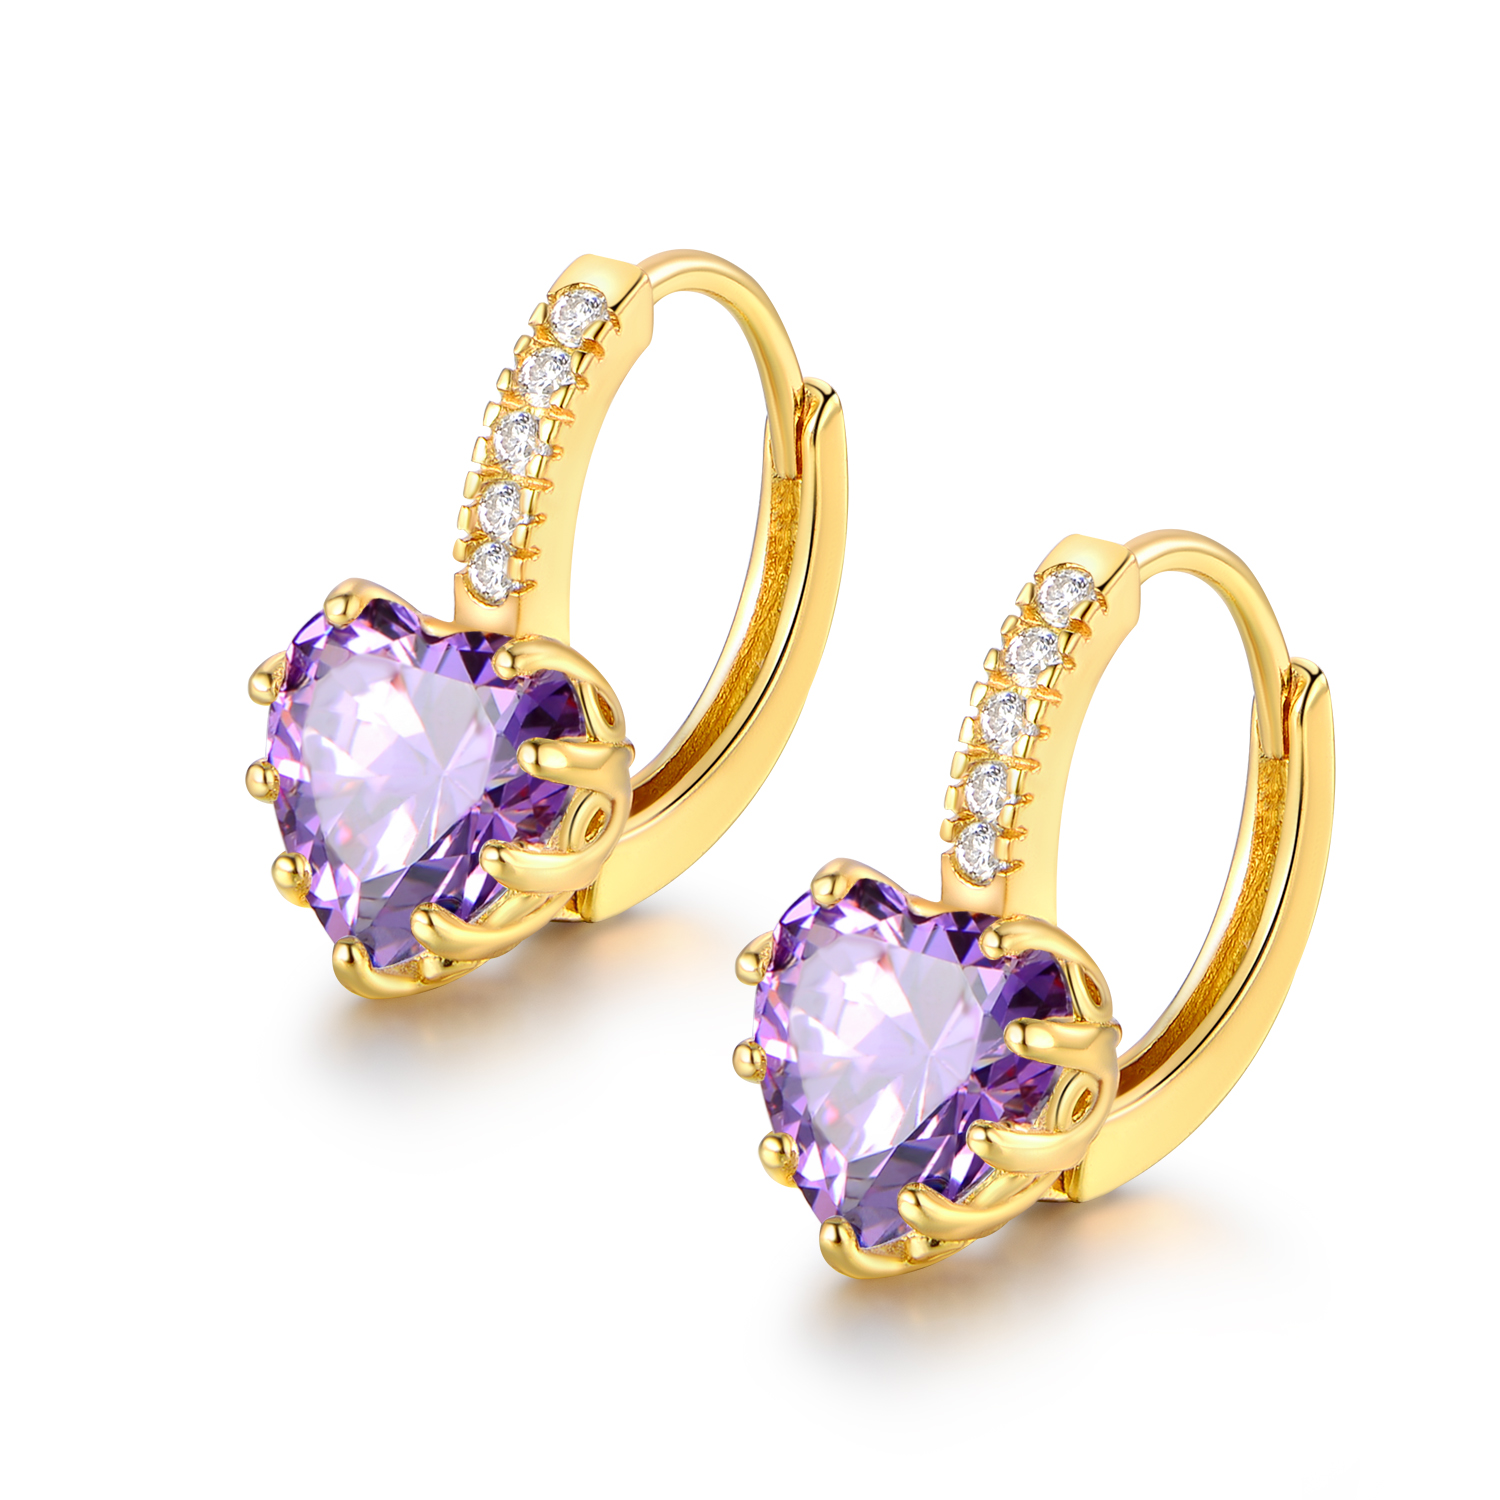 Luxury Party Women Heart Shaped Amethyst 18k Gold Filled Cubic Zirconia Earrings